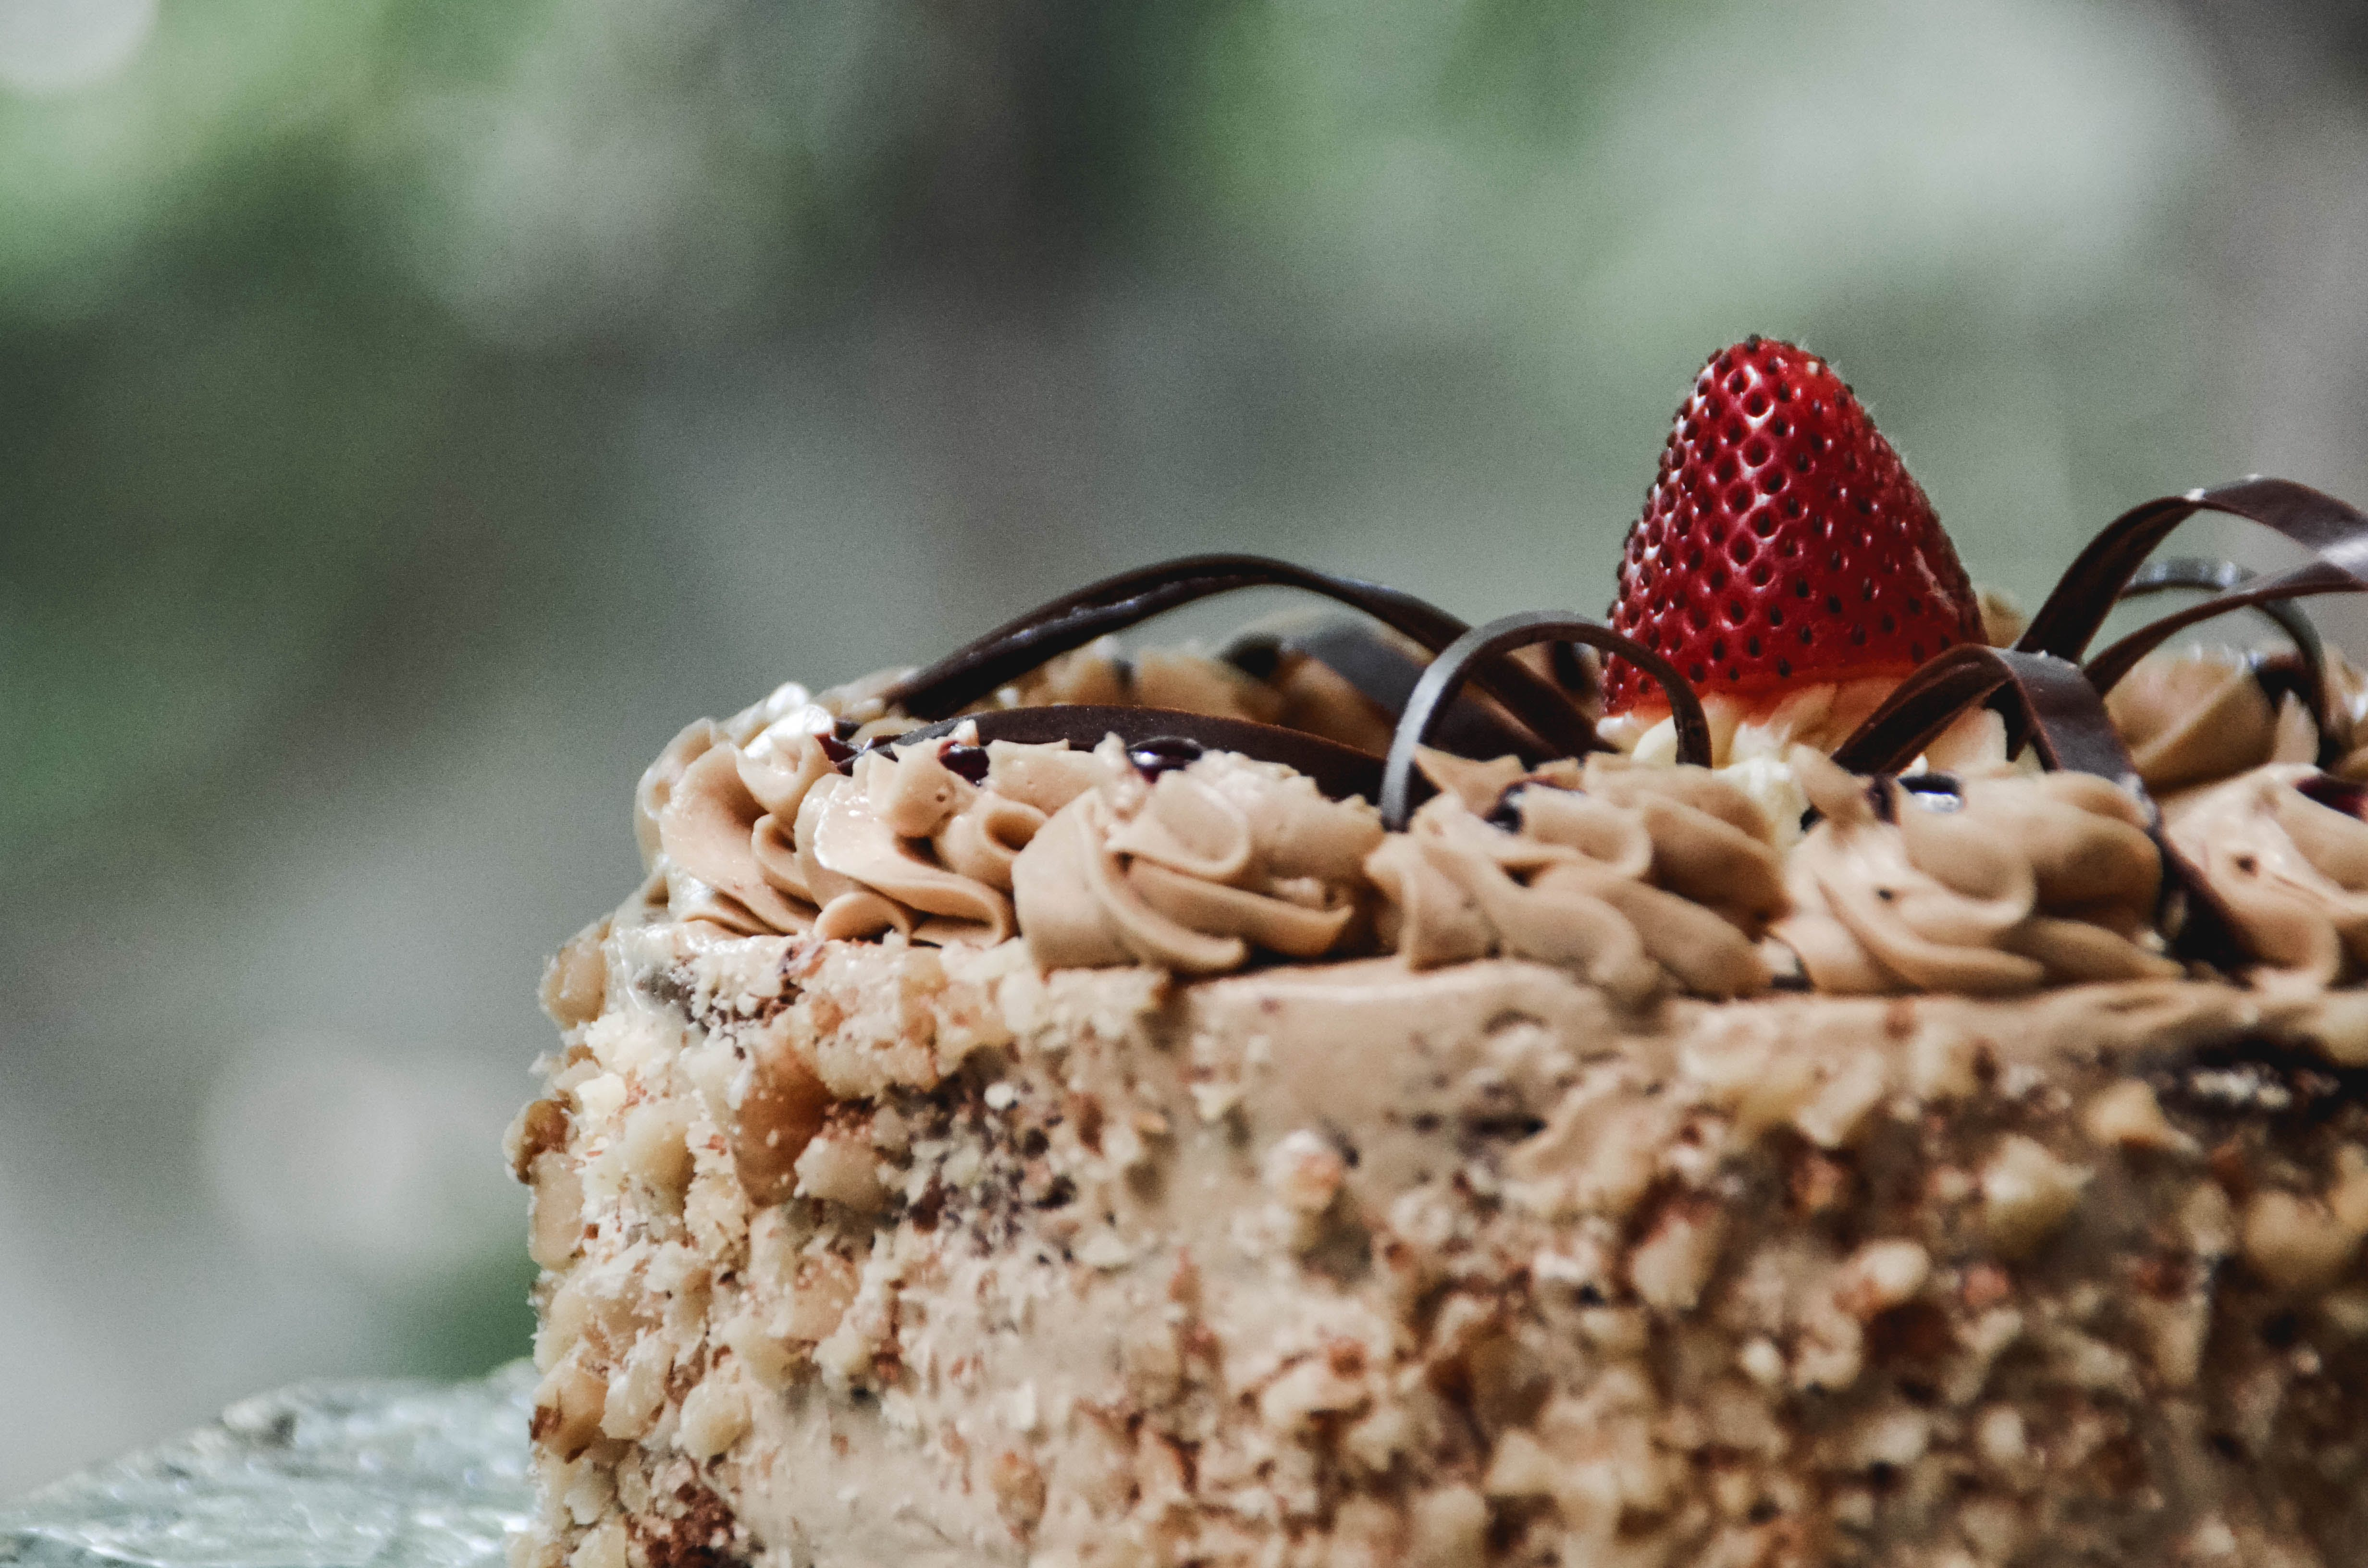 Shallow Focus Photography Cake With Red Strawberry on Top